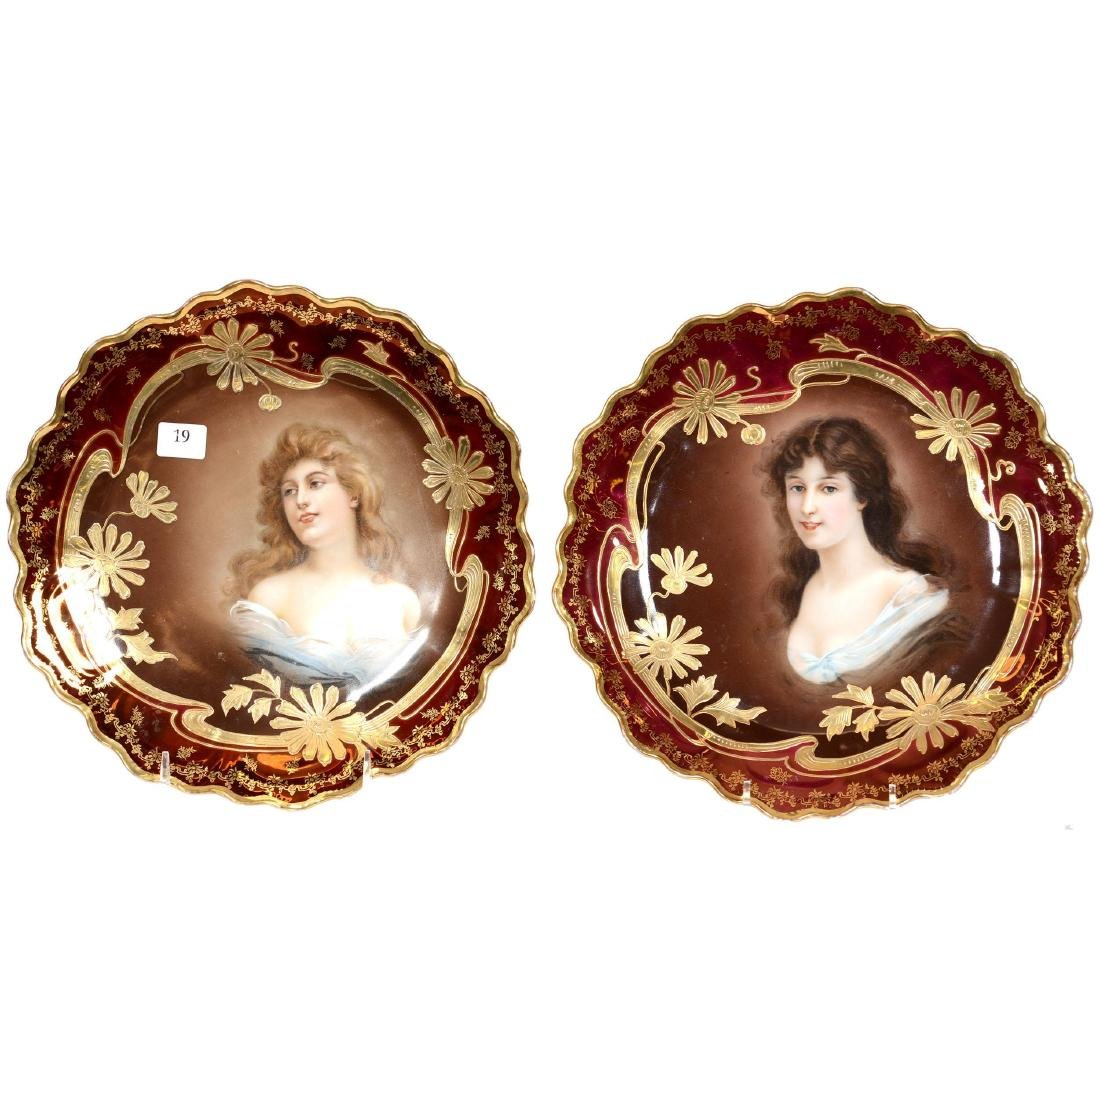 Pair Royal Vienna Beehive Portrait Plates